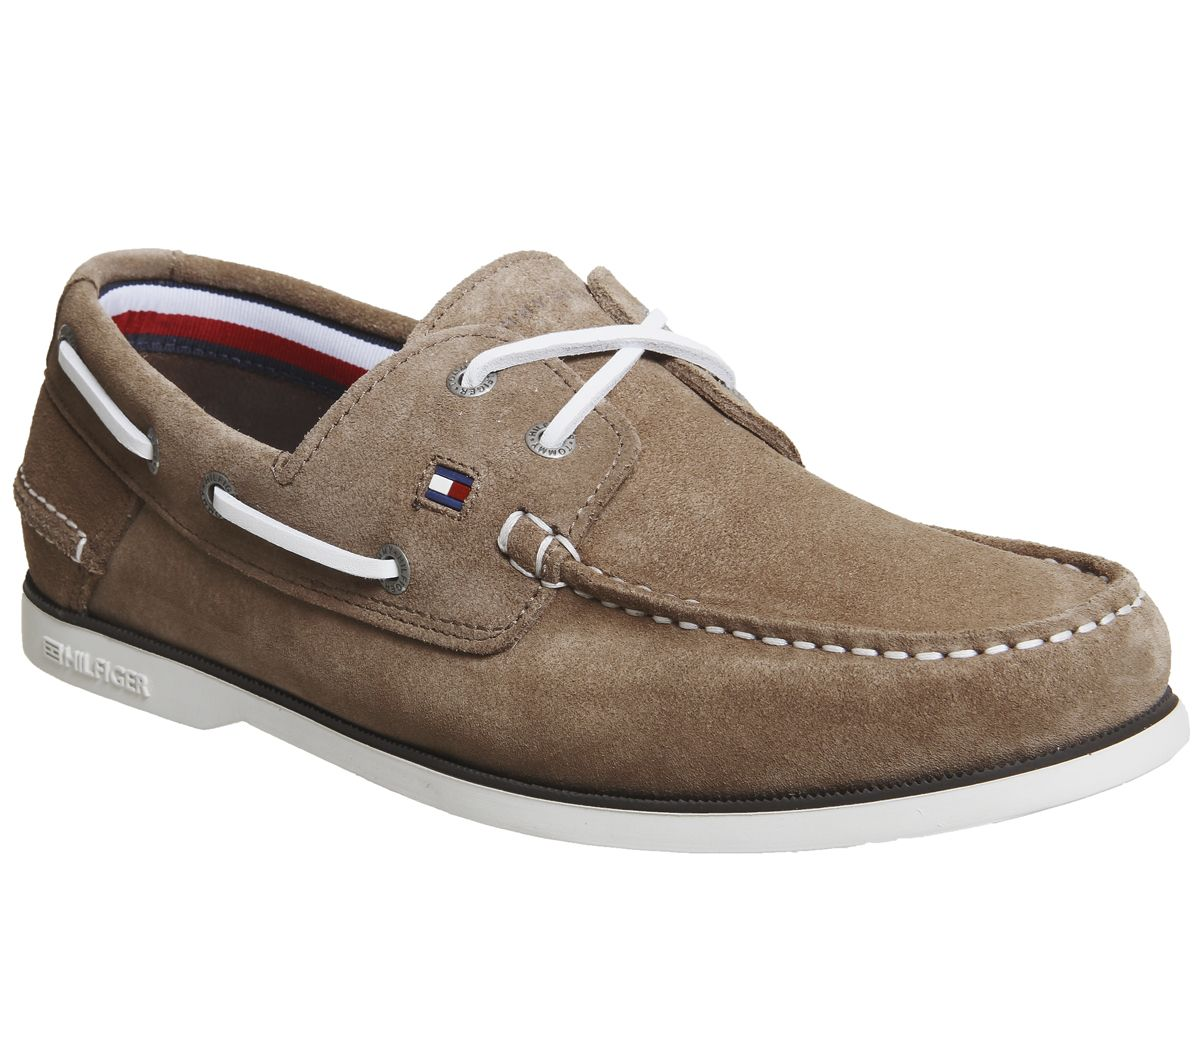 852f8e529563 Tommy Hilfiger Classic Boat Shoes Taupe Suede - His trainers